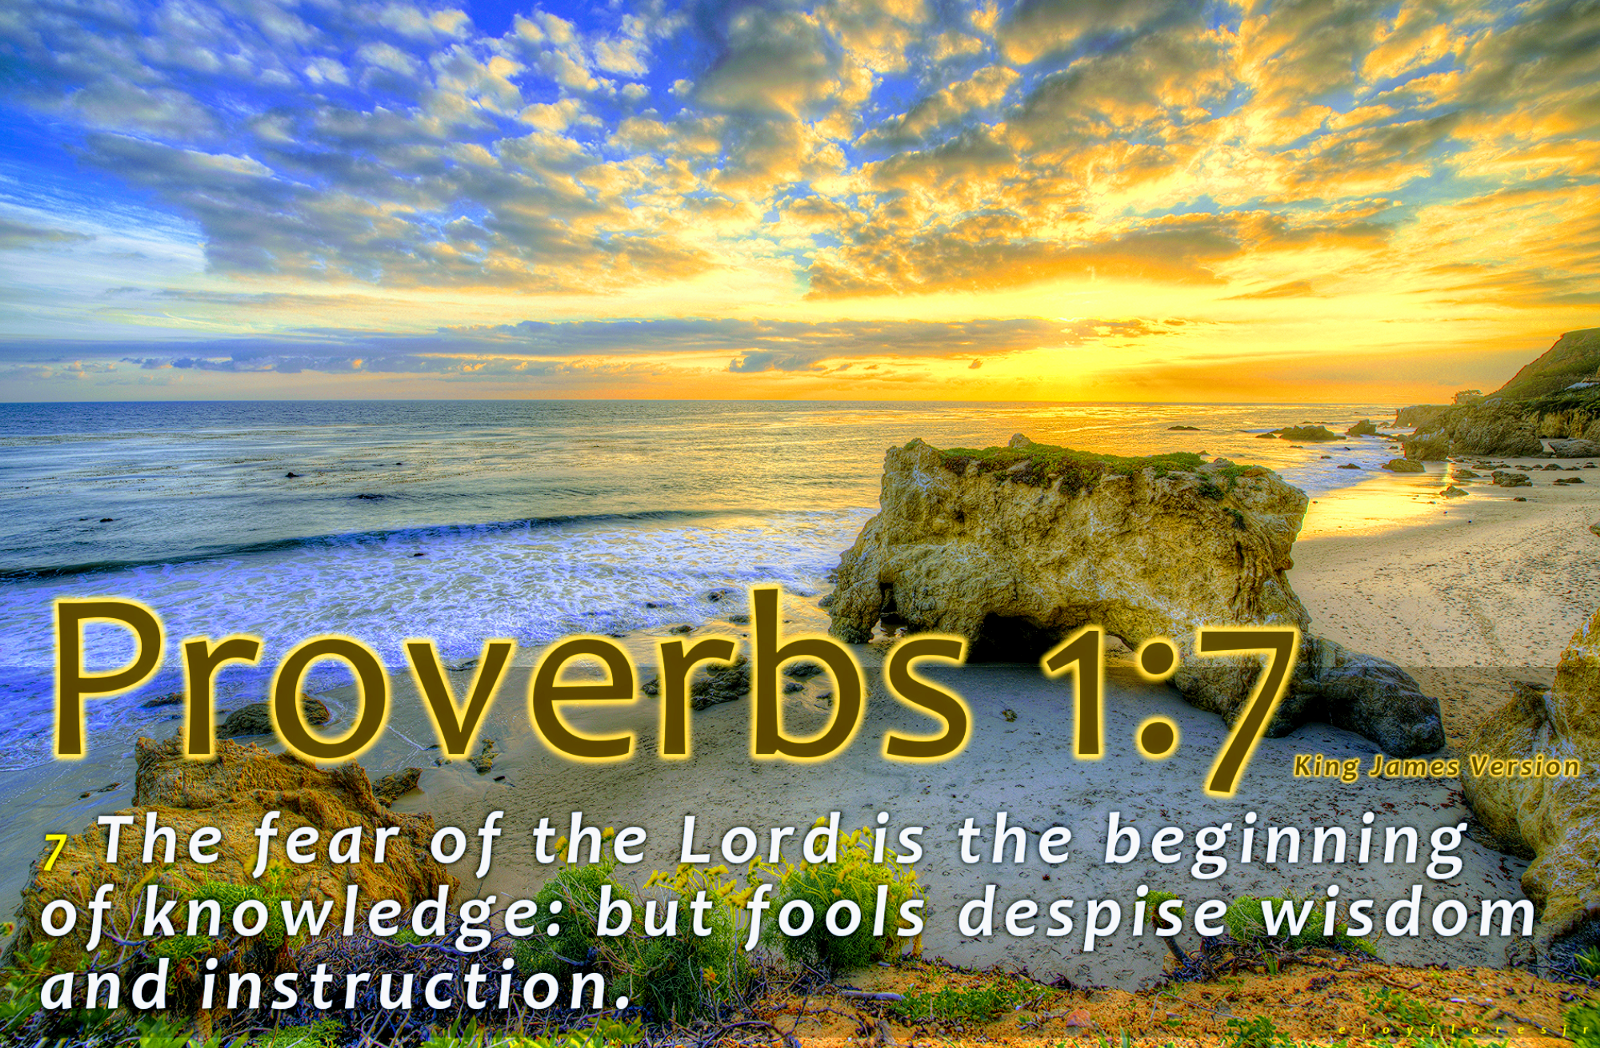 the fear of the lord is the beginning of knowledge but fools